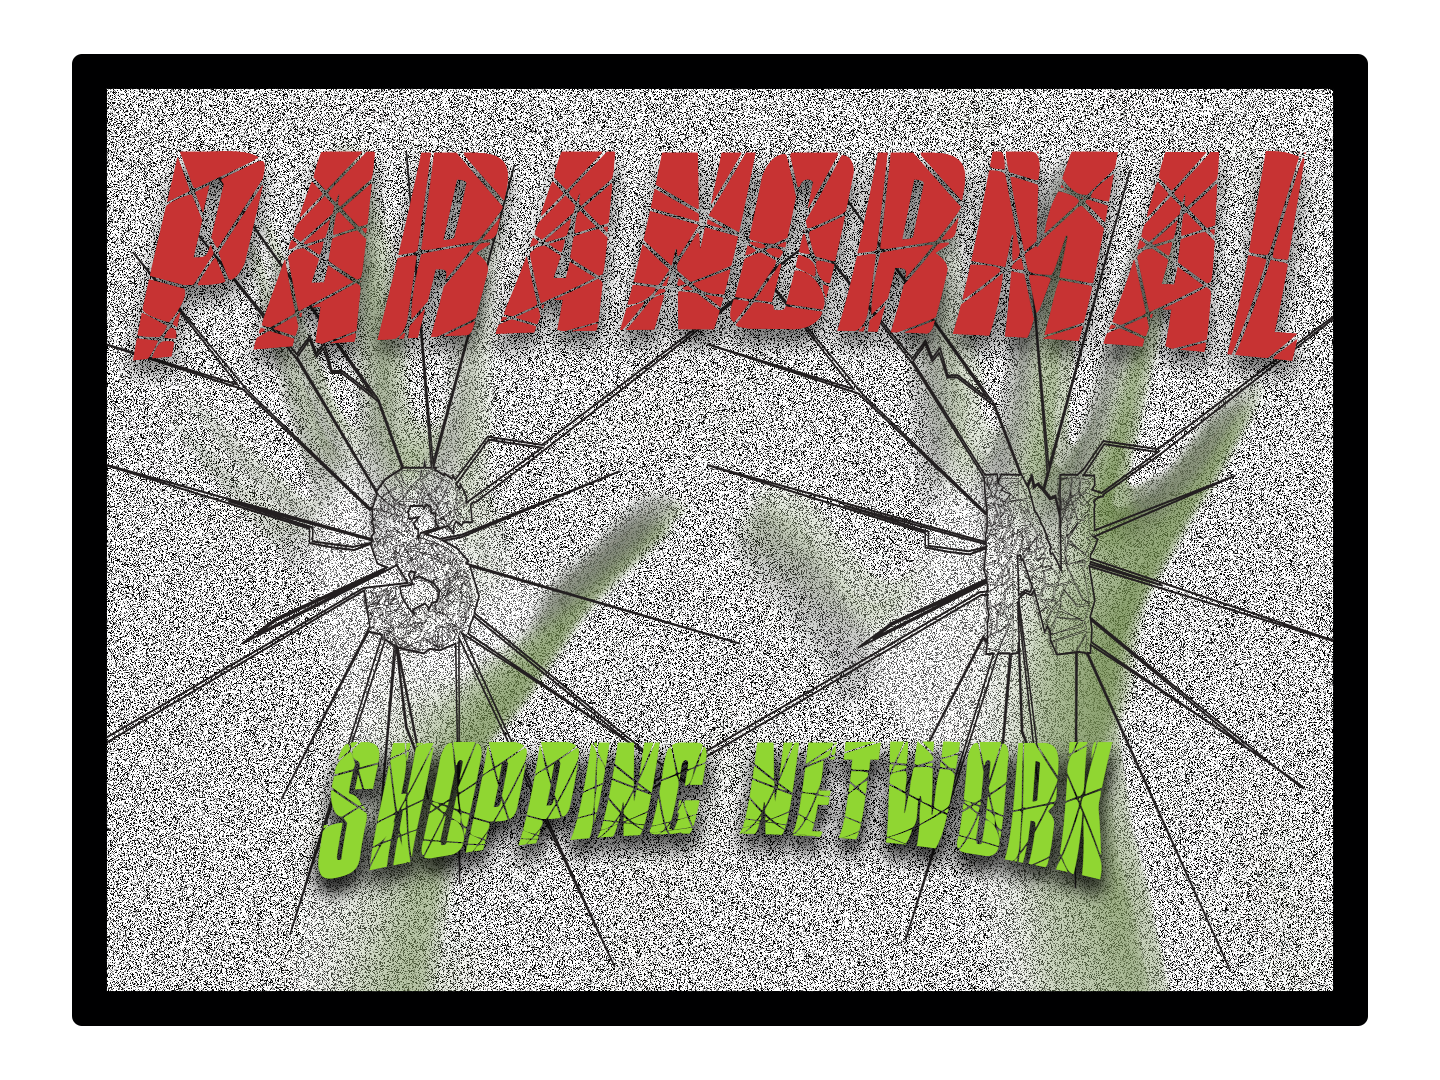 Casting Call: Paranormal Shopping Network